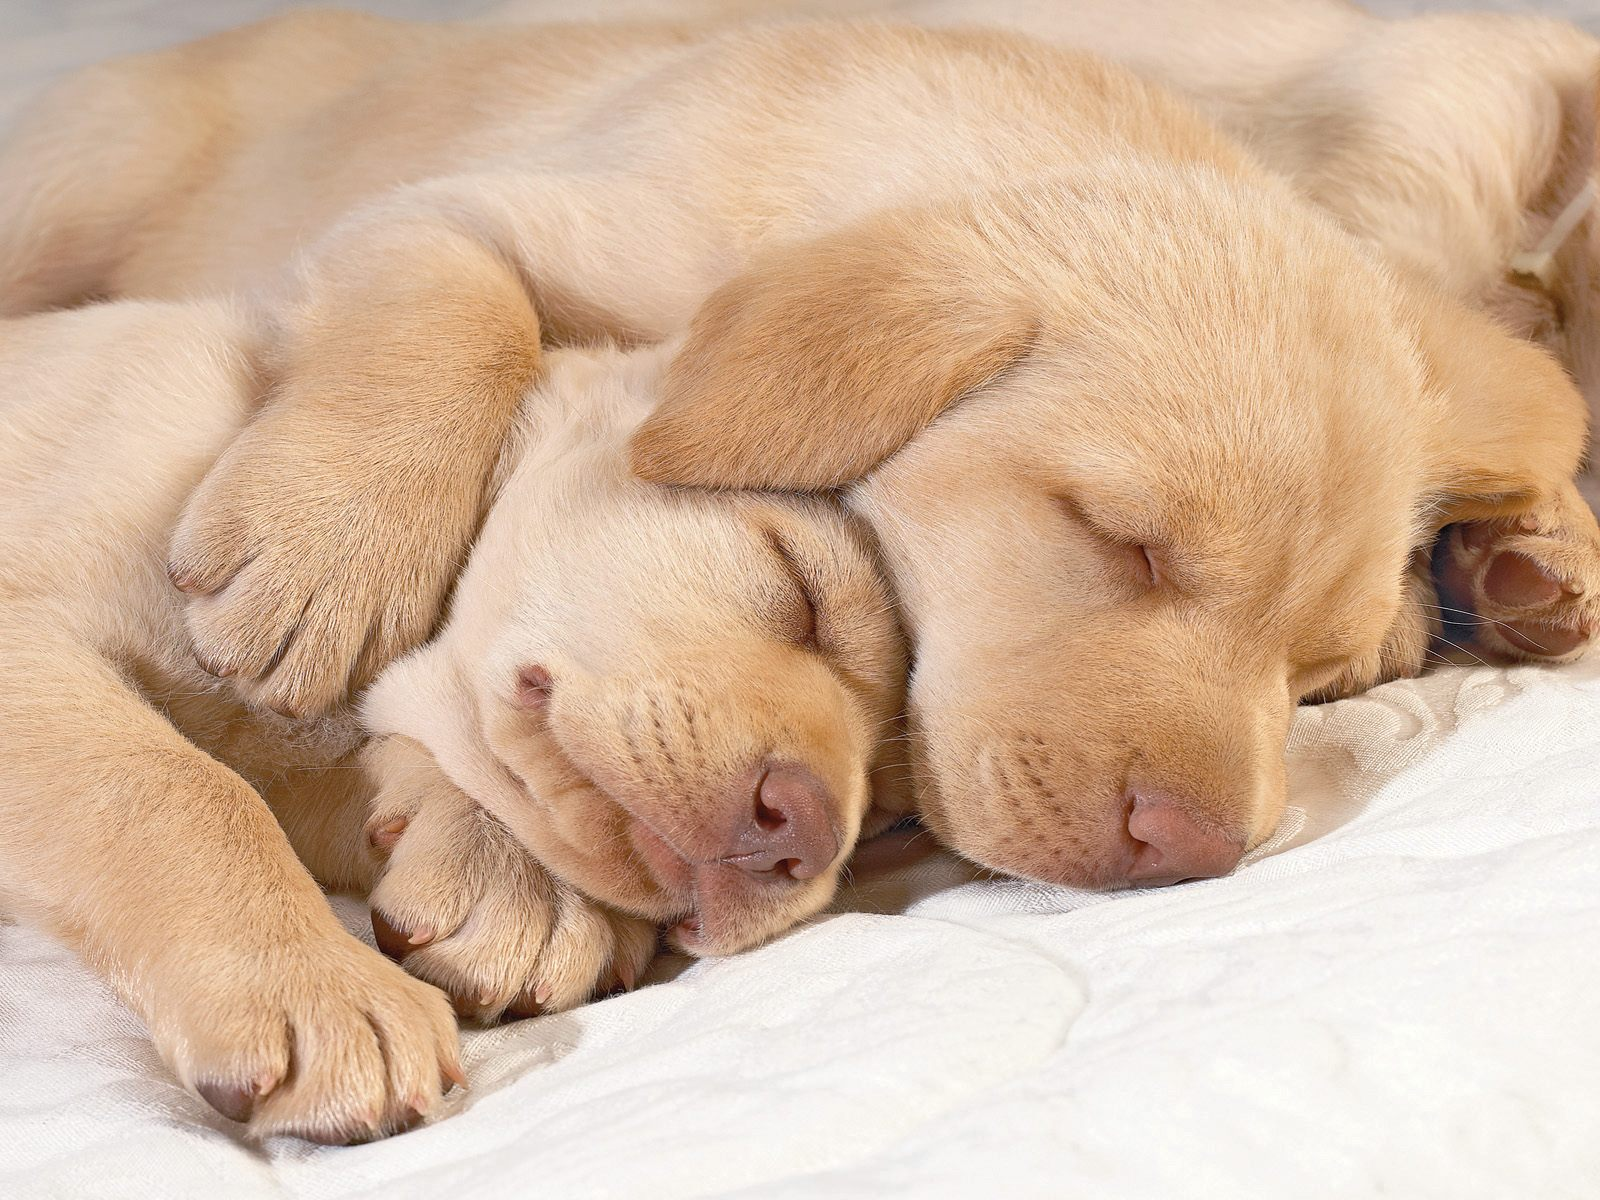 Cute Puppies Pictures Wallpaper of Dog Breeds 1600x1200